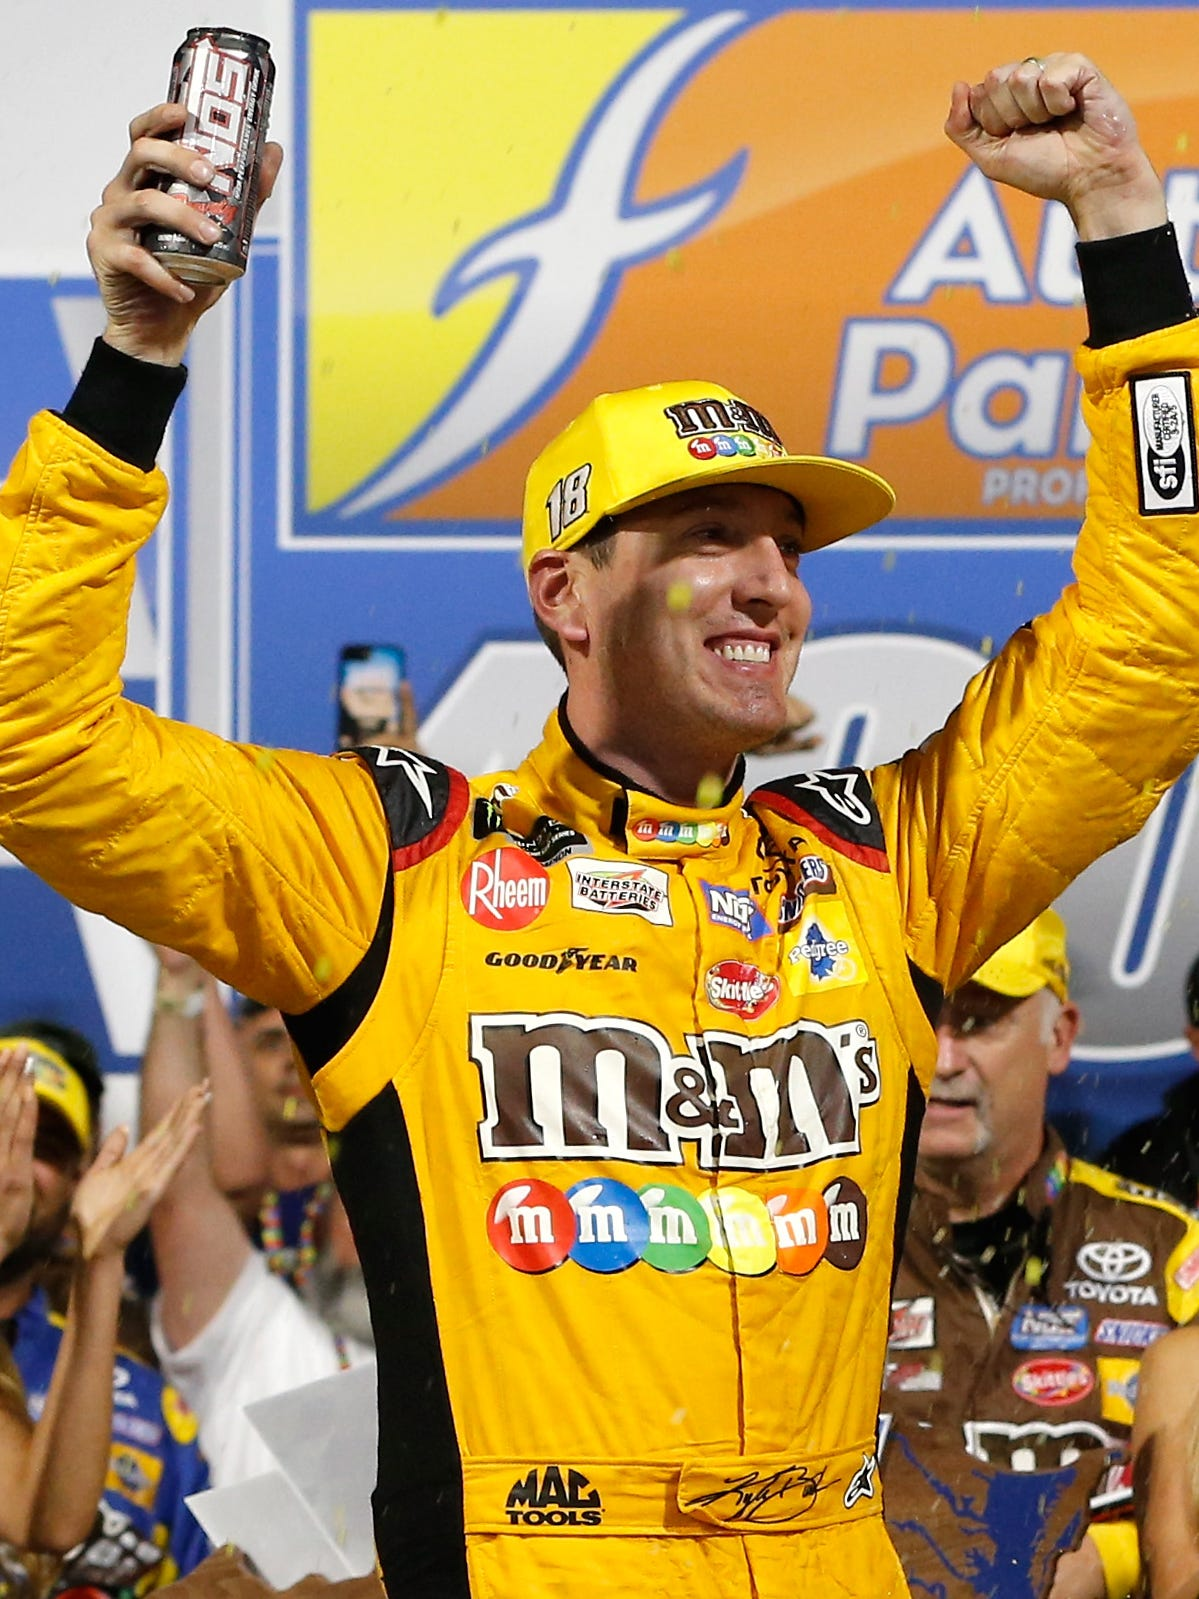 Kyle Busch celebrates in victory lane after winning the Monster Energy NASCAR Cup Series Federated Auto Parts 400 at Richmond Raceway.